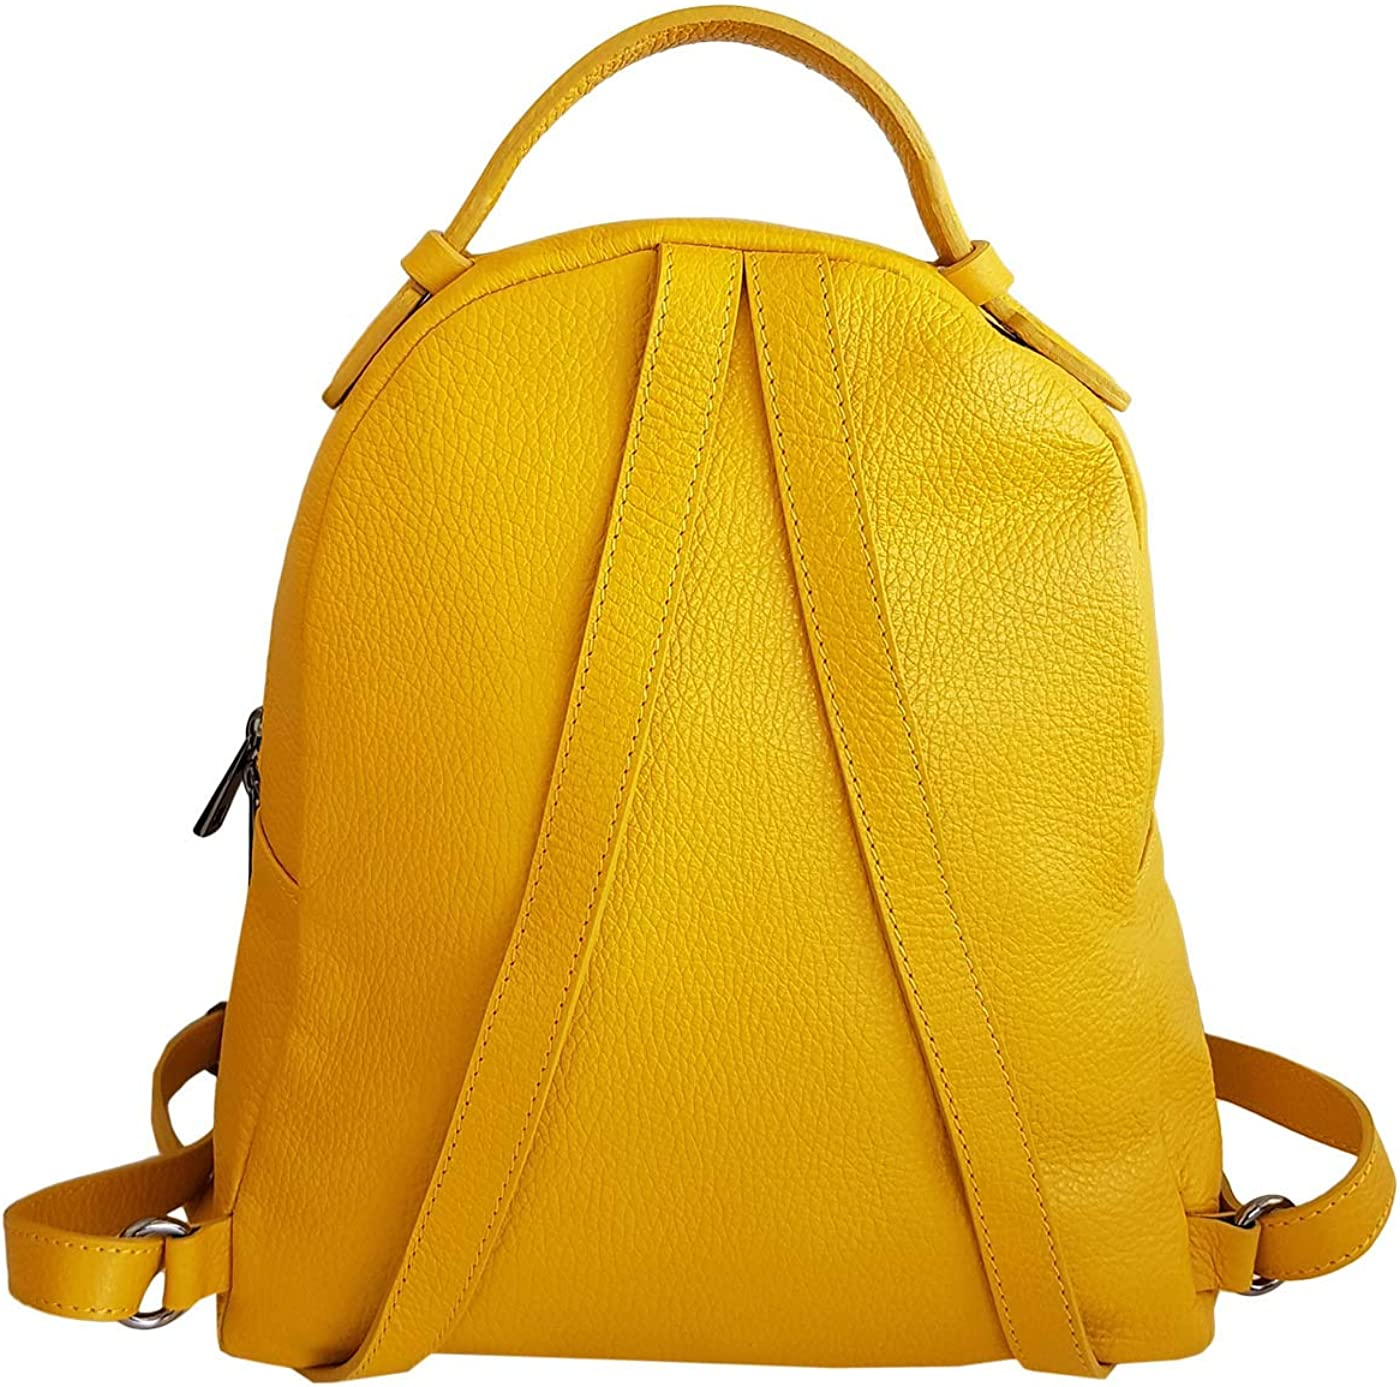 Atelier FLORENTINS ZAINO IN PELLE BRICA MADE IN ITALY Giallo